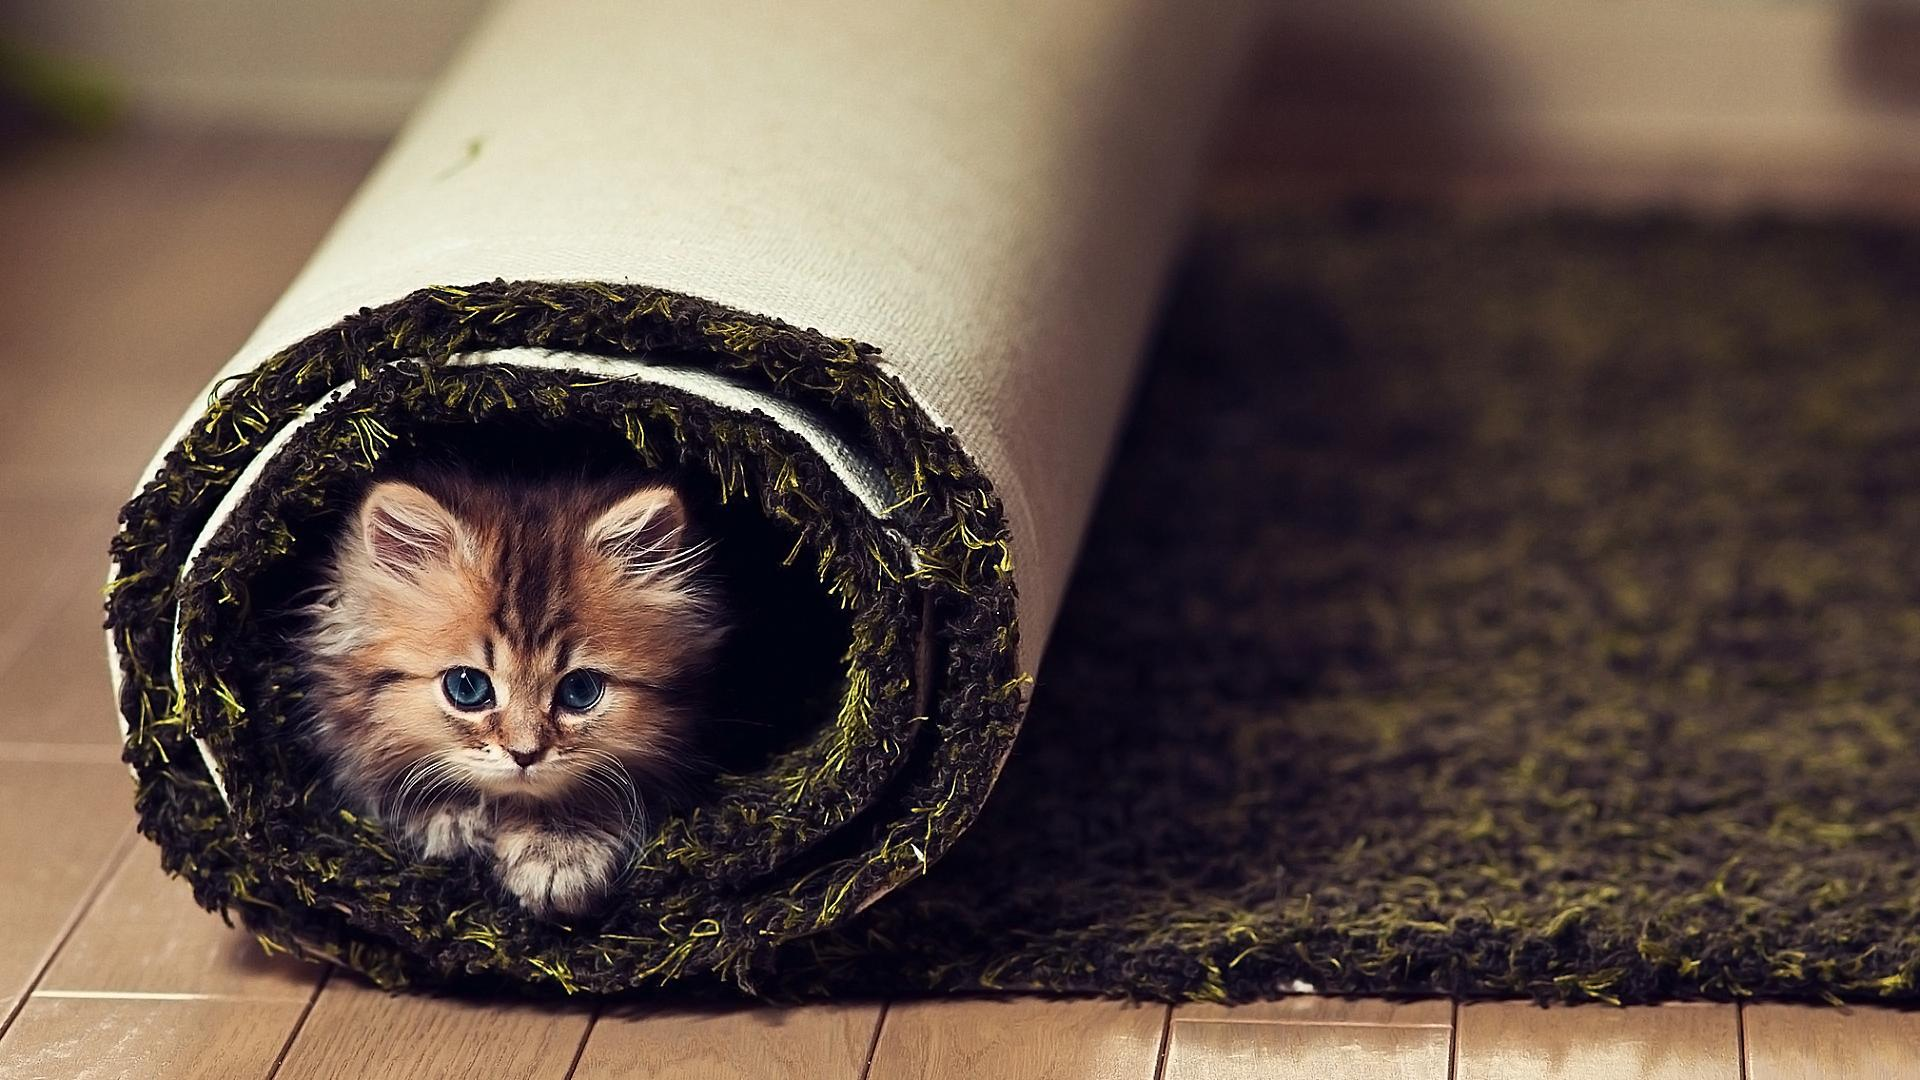 Cute Animals Wallpaper Hd 41722 1920x1080px